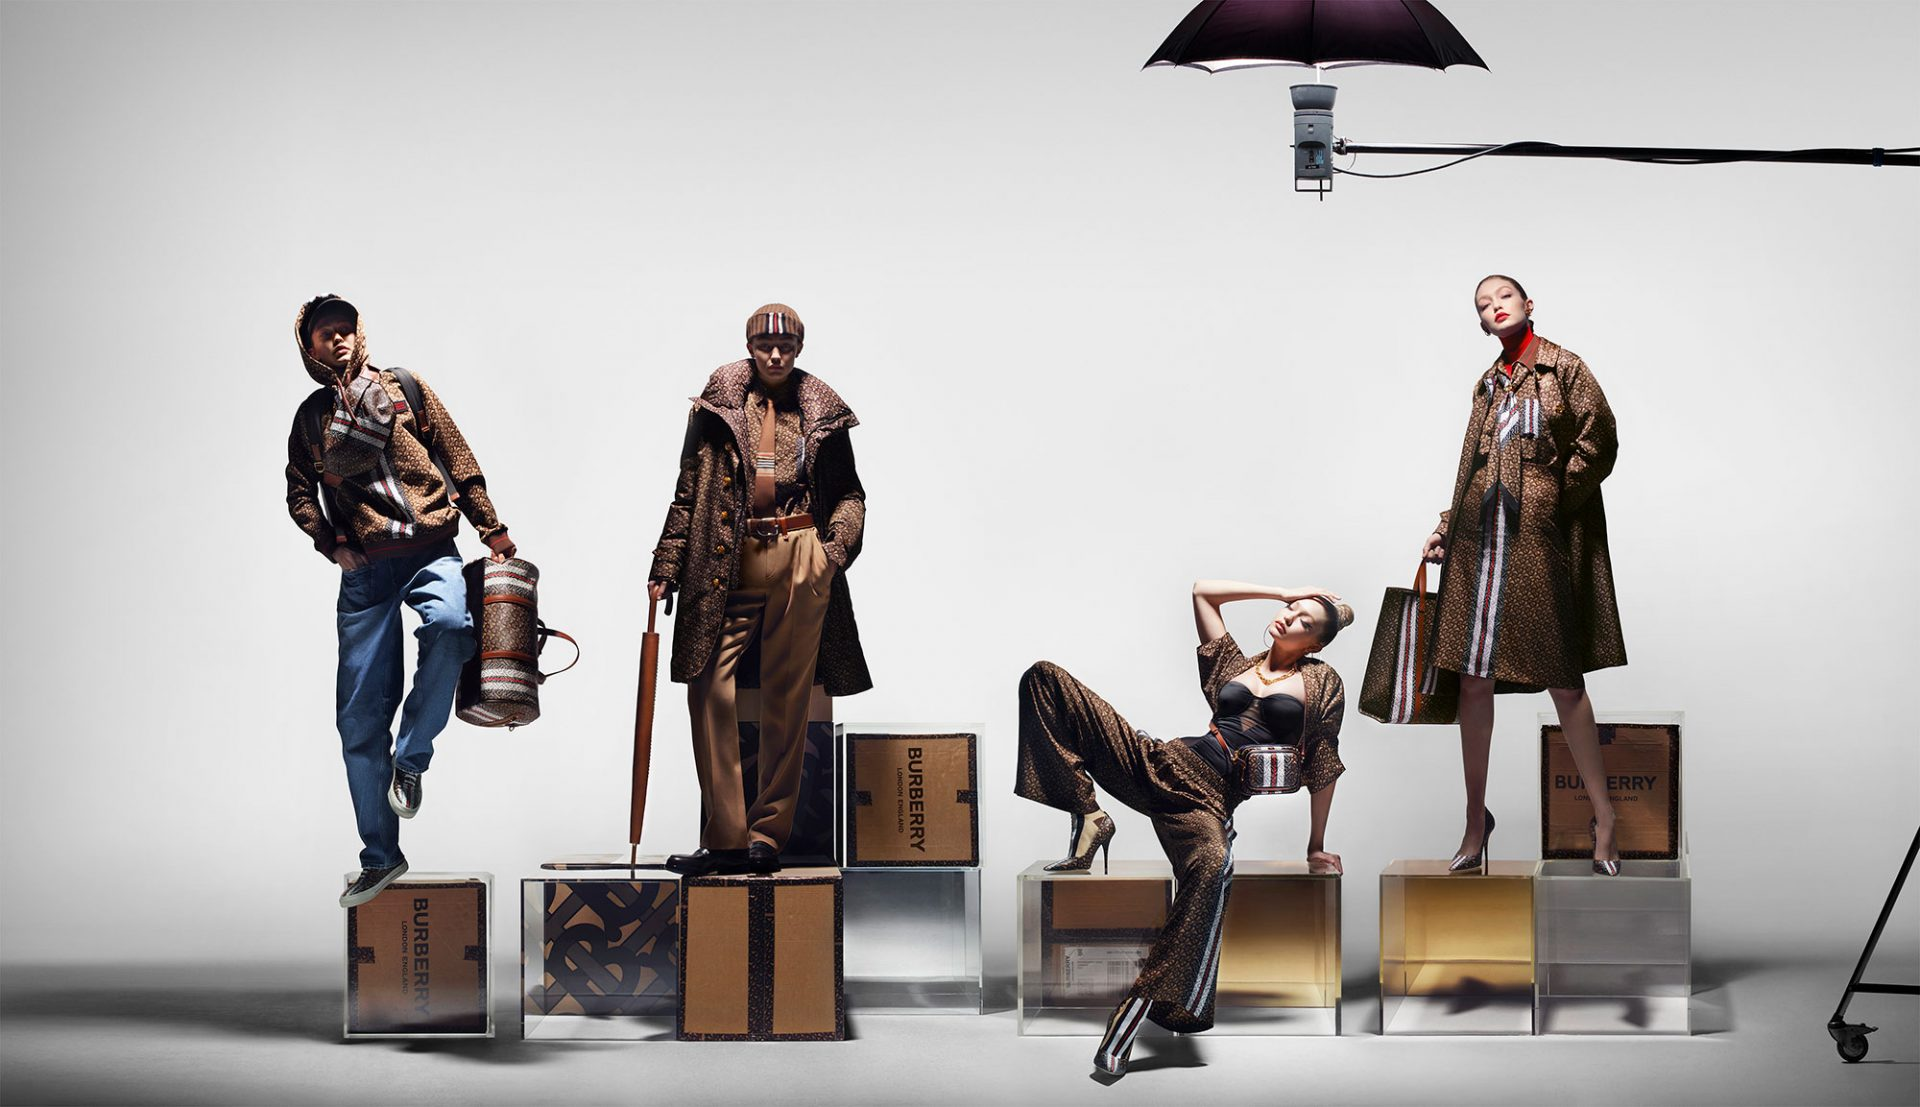 © Courtesy of Burberry / Nick Knight